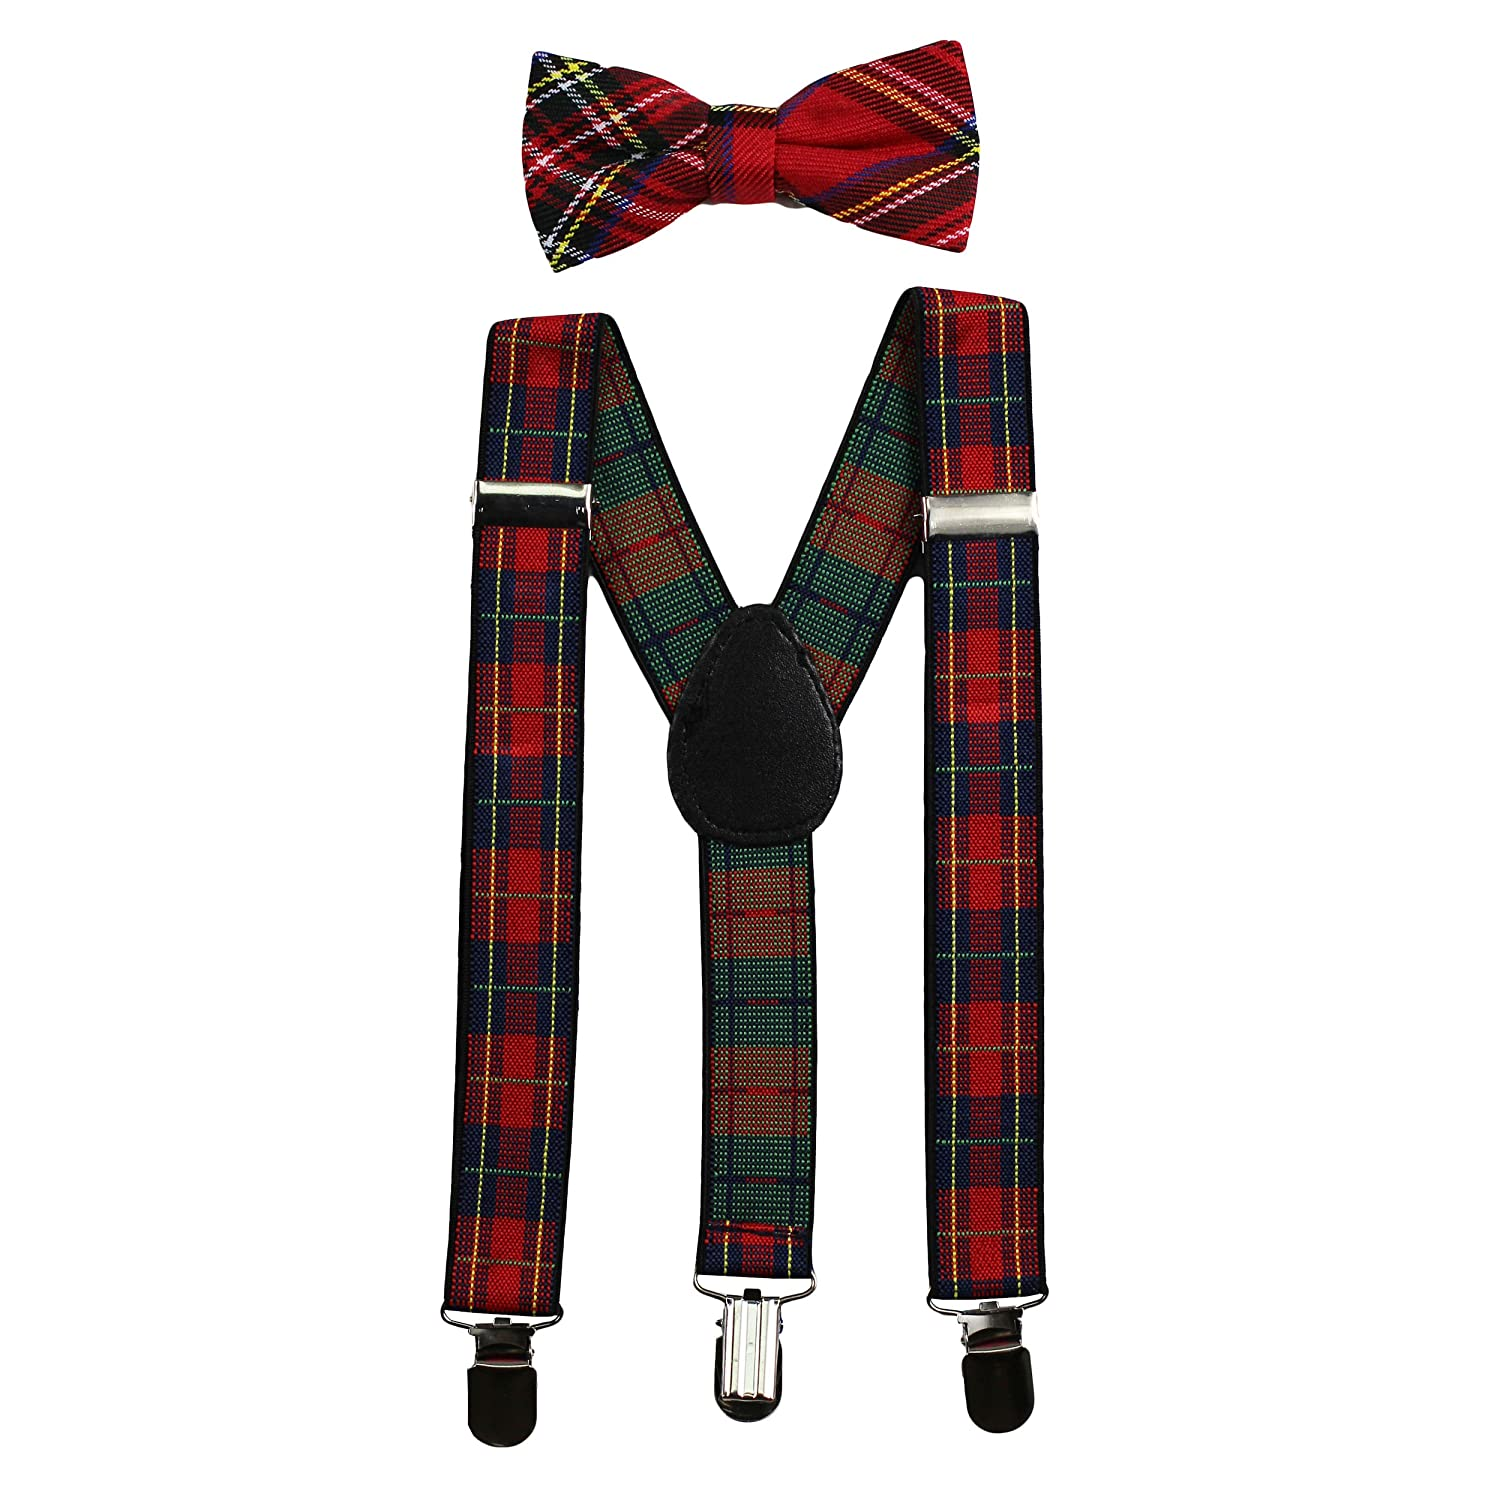 Elastic Adjustable-Fits Baby to Toddler Baby Suspenders and Bow Tie Set